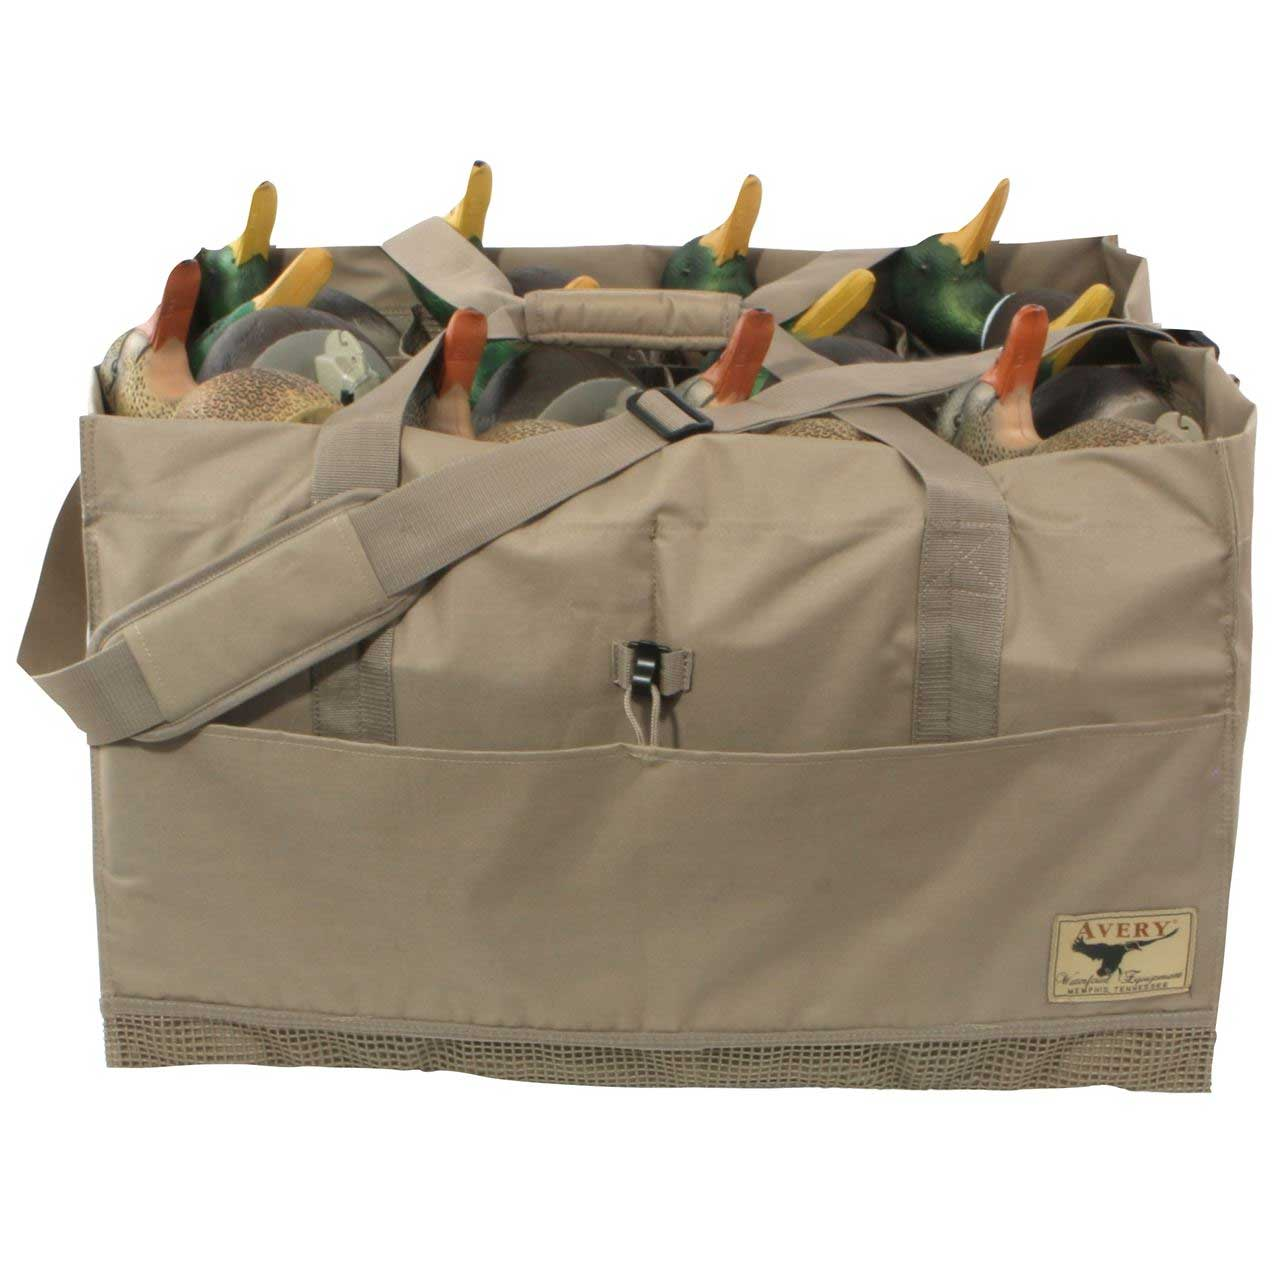 Avery 12-Slot Floating Duck Decoy Bag_1.jpg